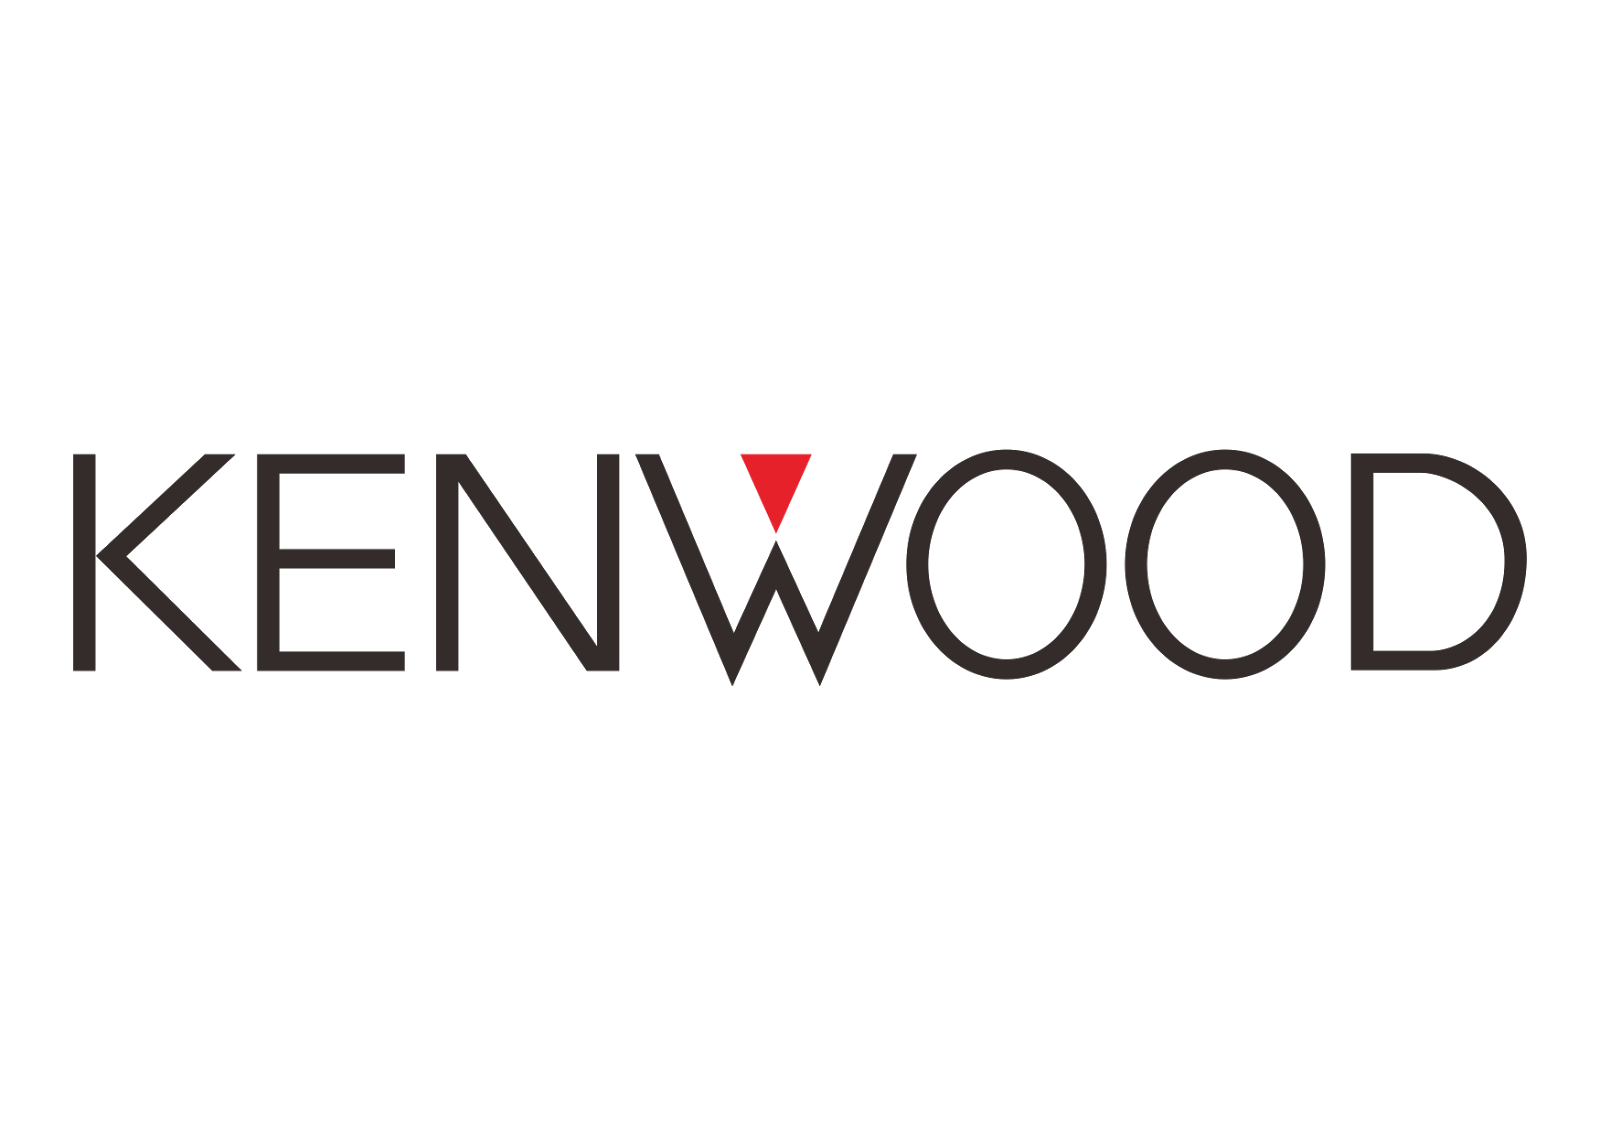 Kenwood-logo-vector